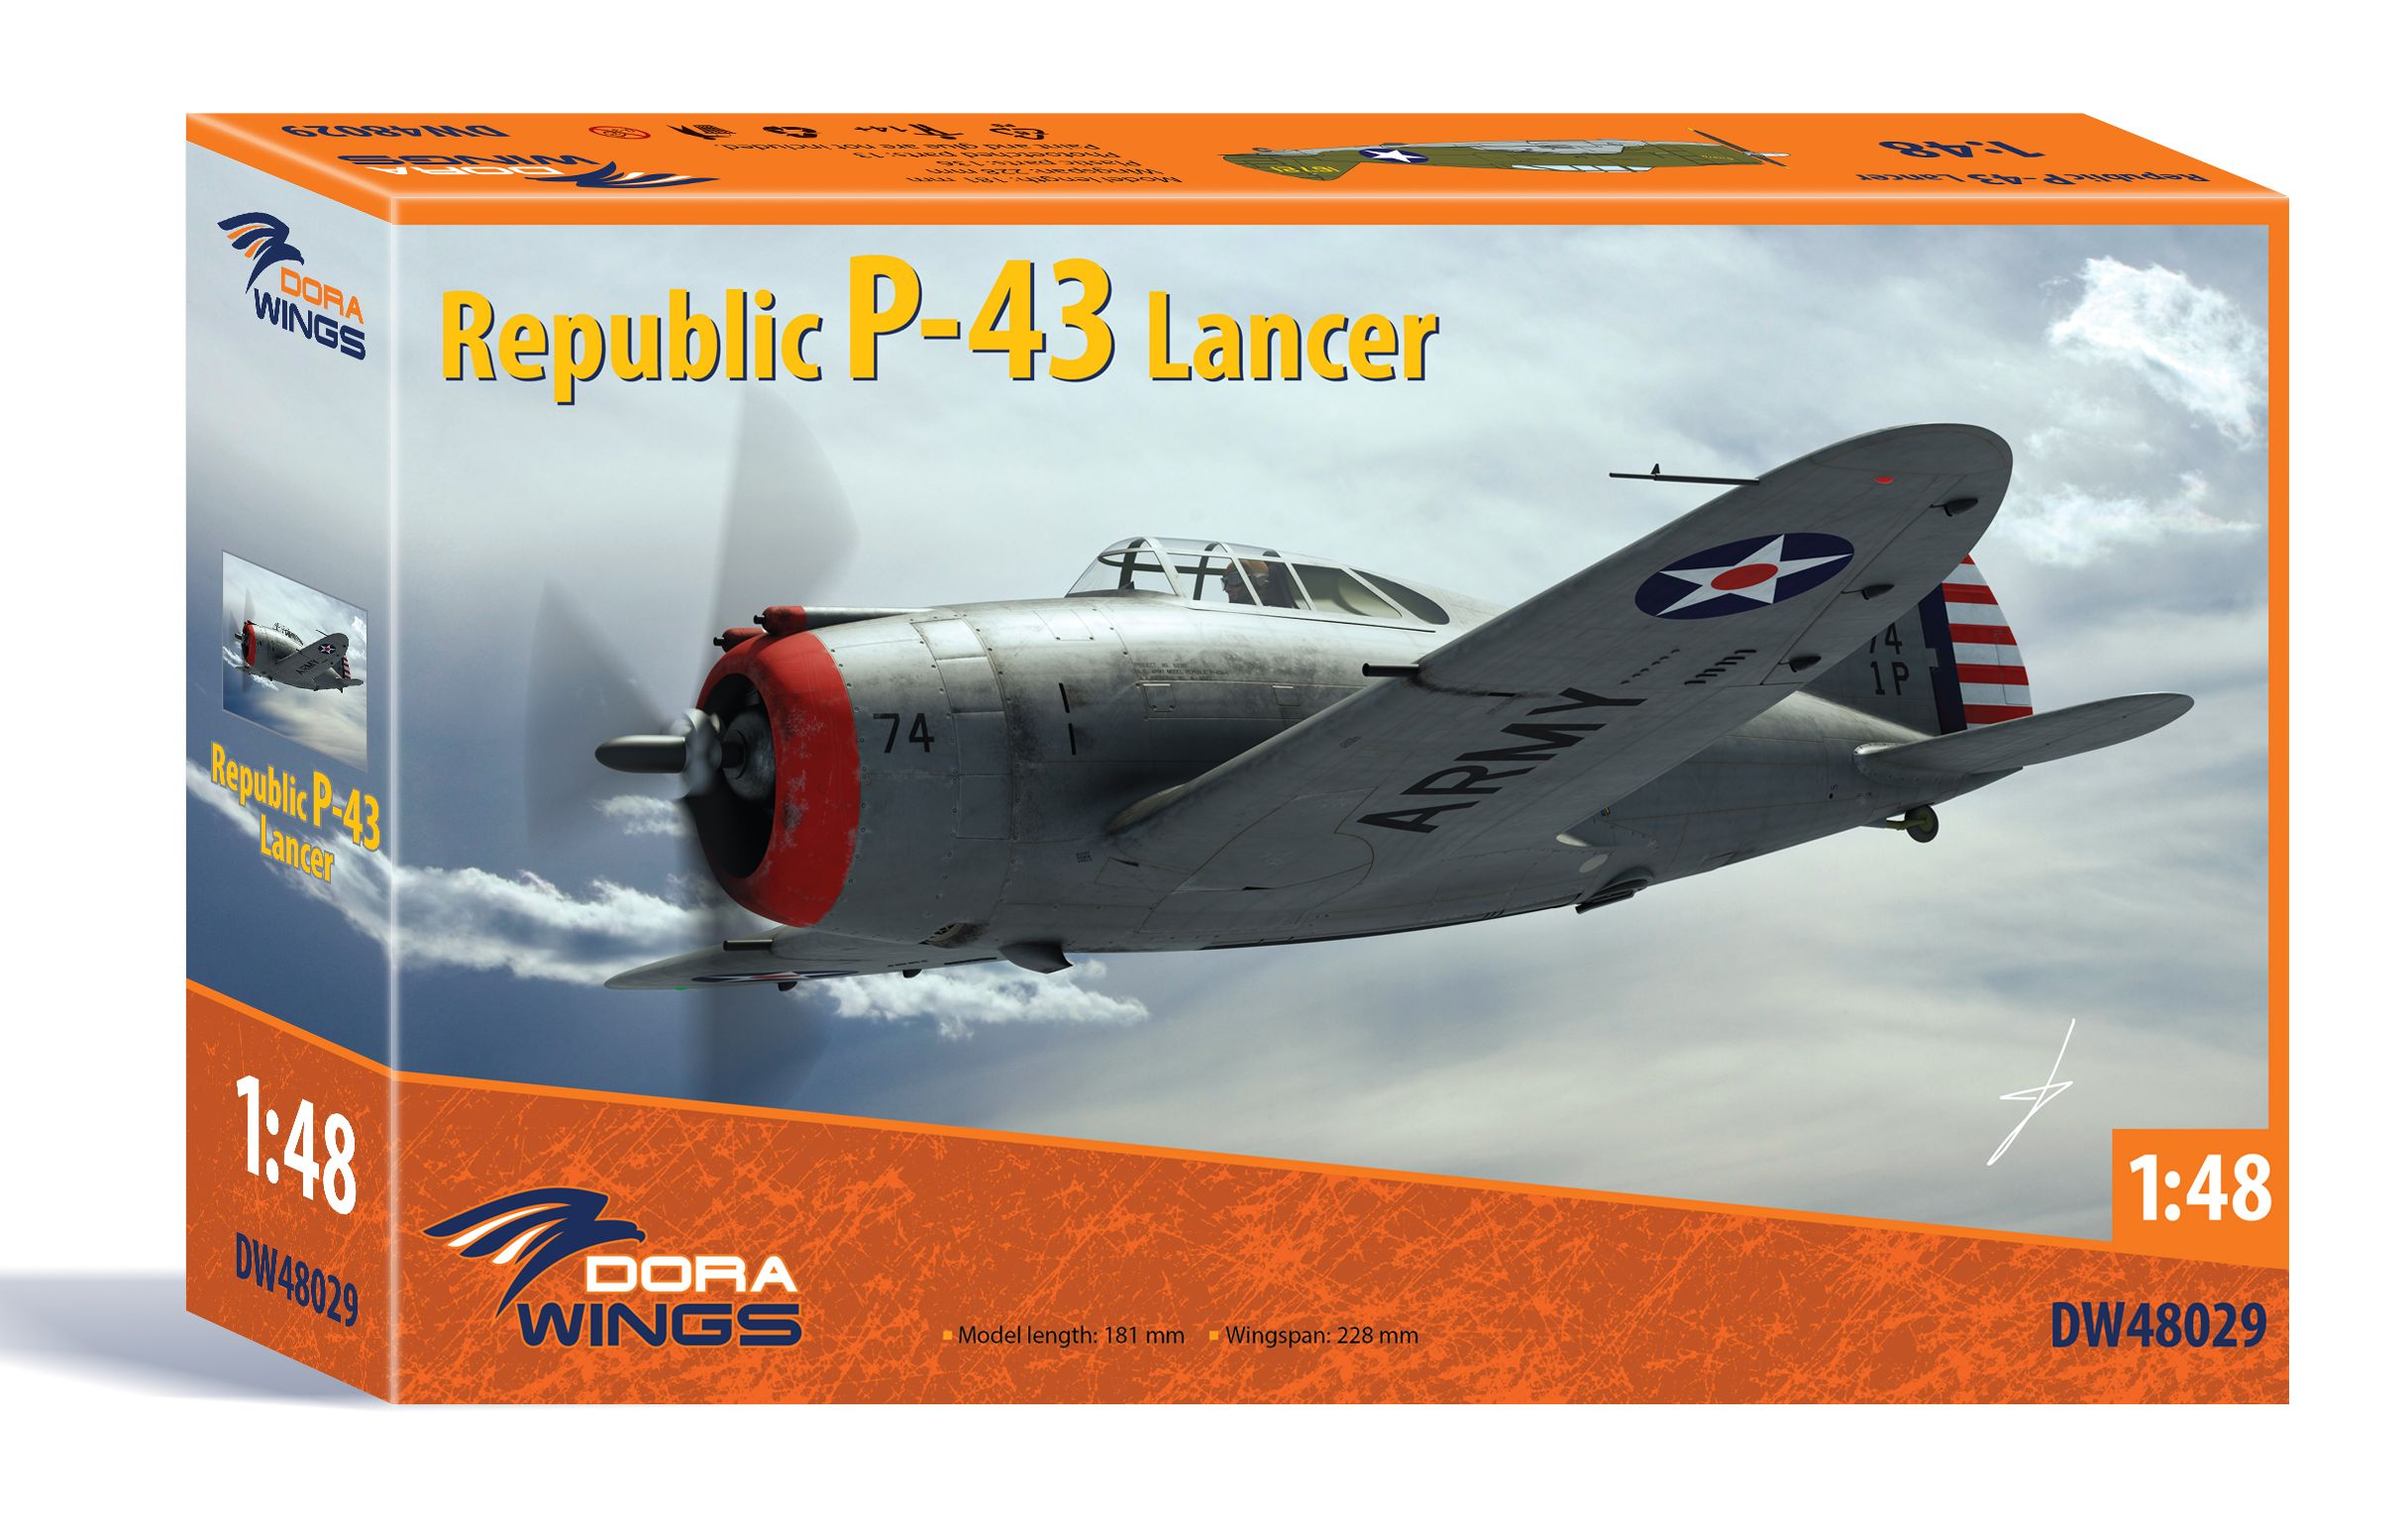 Dora Wings 1/48 Republic P-43 Lancer/PinaGraK n-43 JIancep